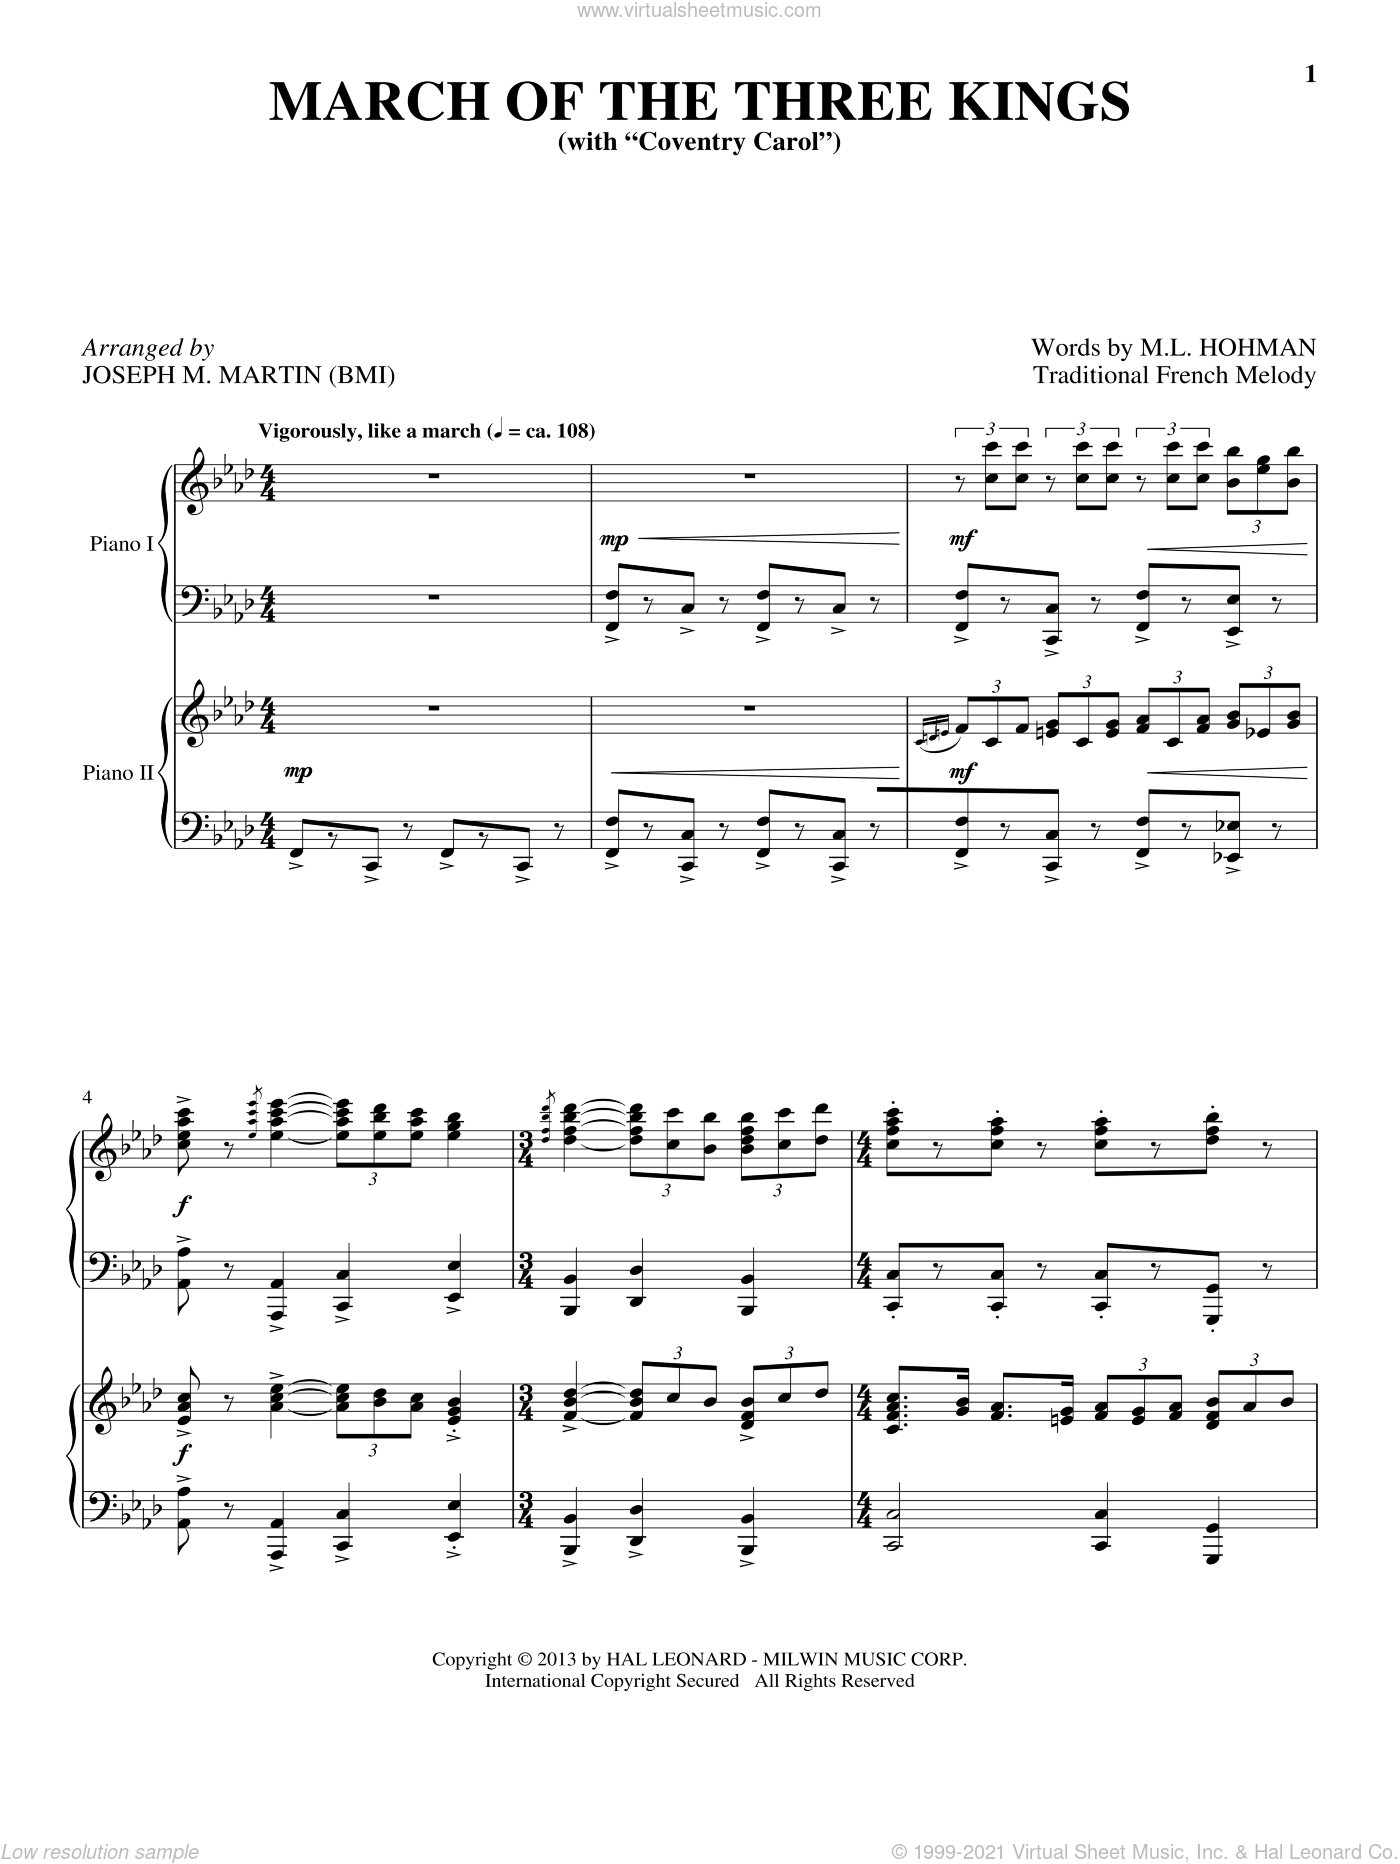 March Of The Three Kings sheet music for piano four hands by Joseph M. Martin, intermediate skill level